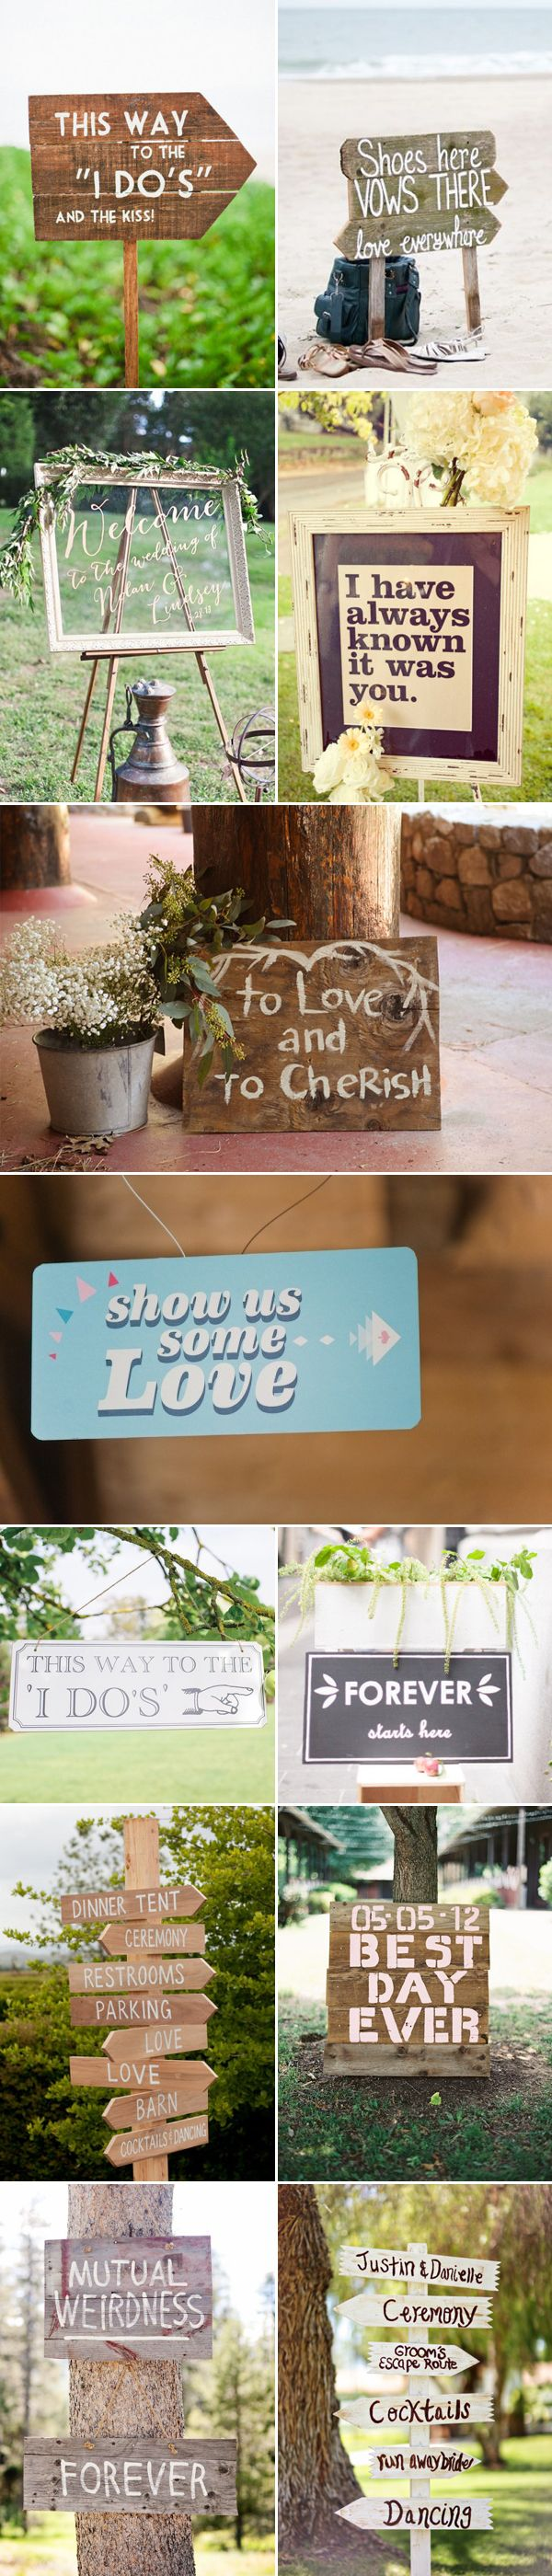 Spell Out Your Love! 46 Fun Wedding Signs